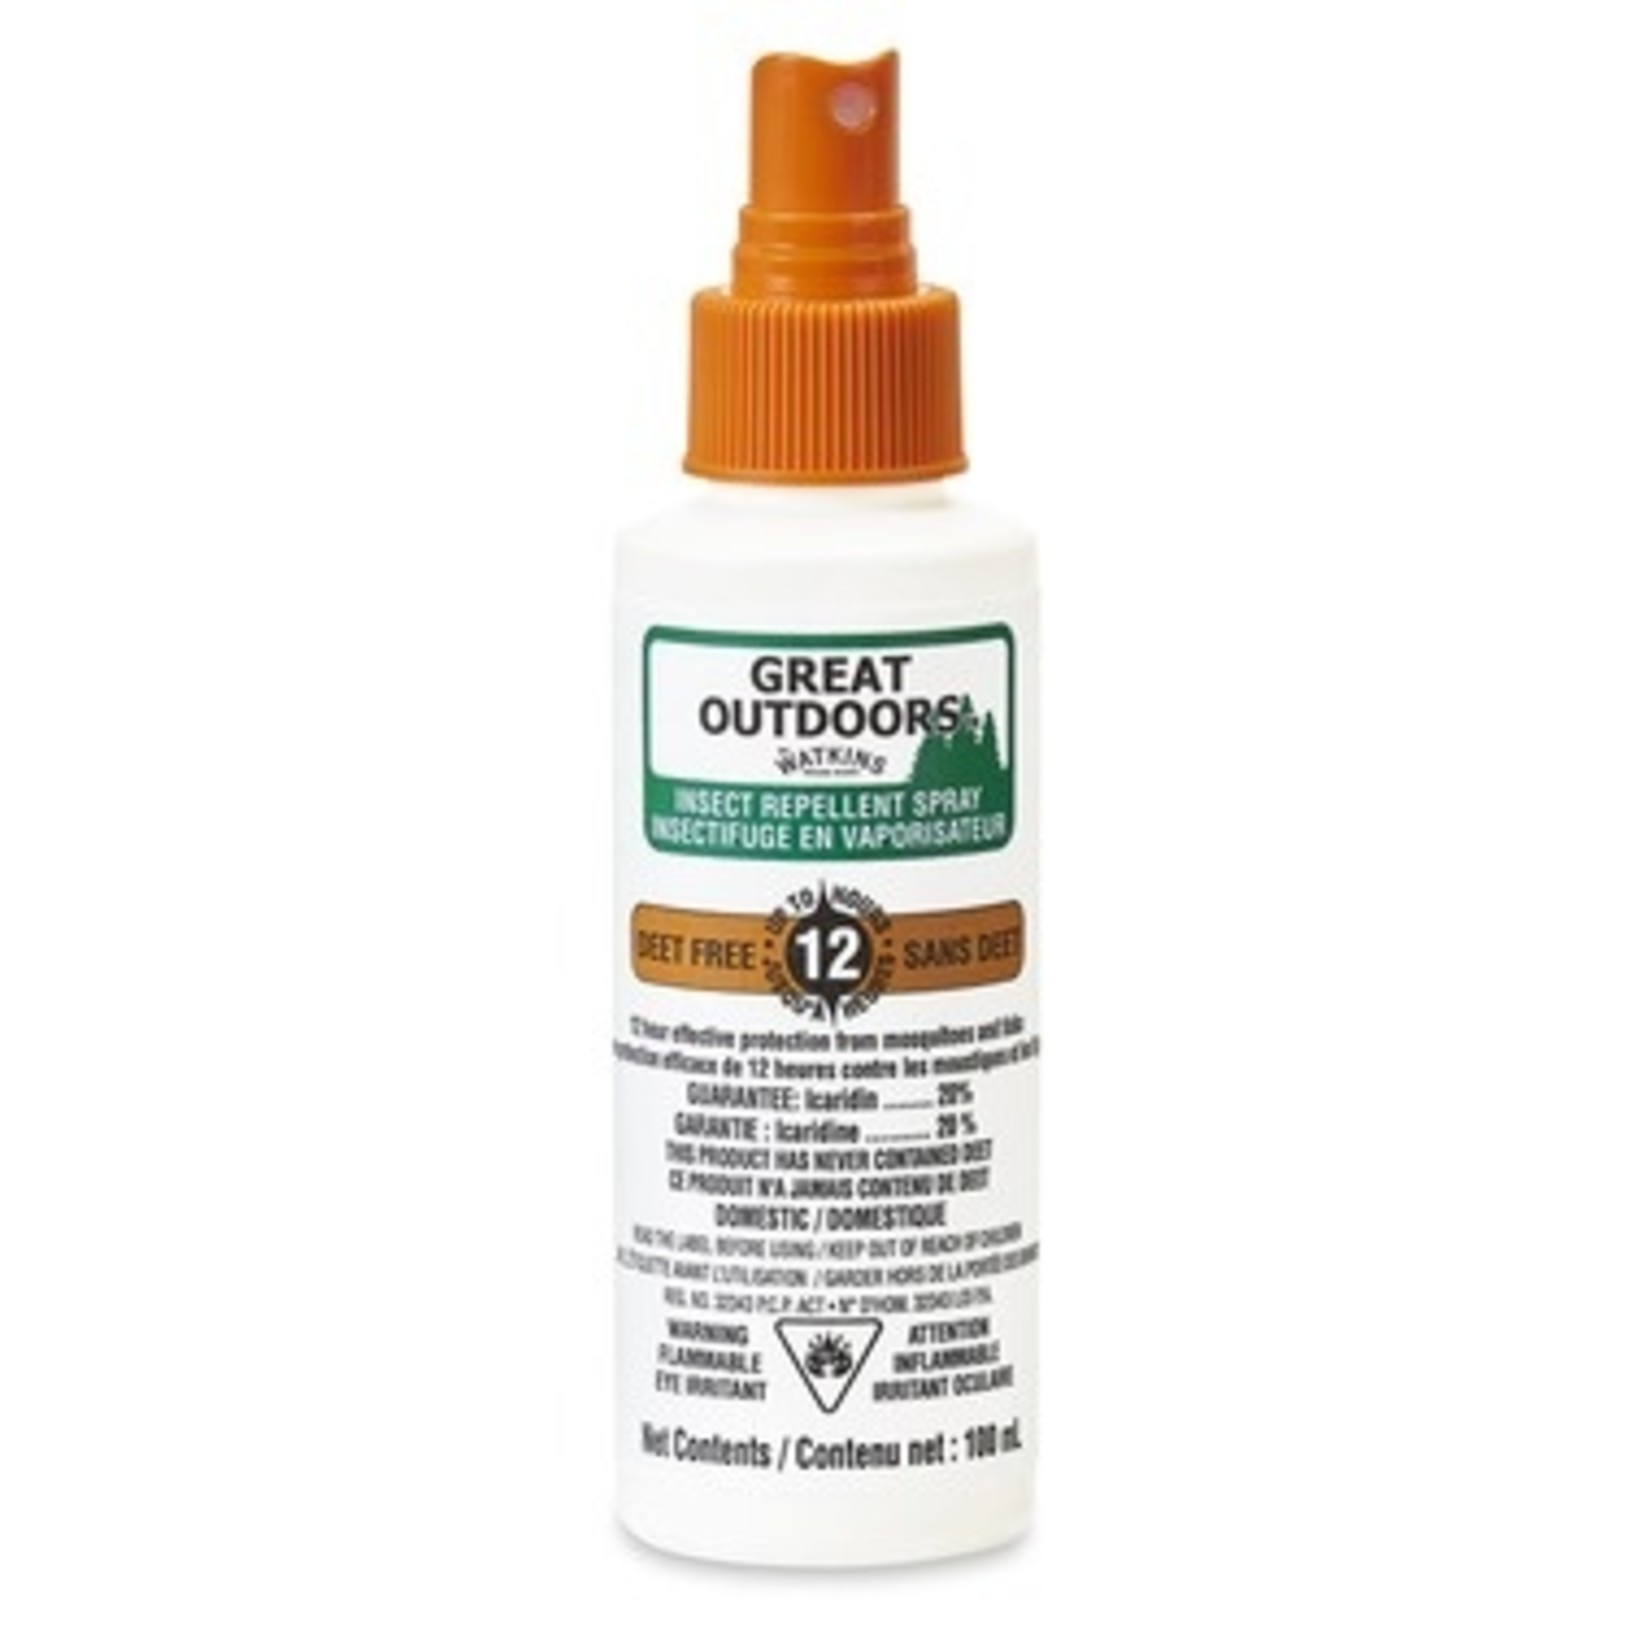 Great Outdoors Watkins Insect Repellent WATKINS GREAT OUTDOORS VAPO ICARIDINE 20% 100ML